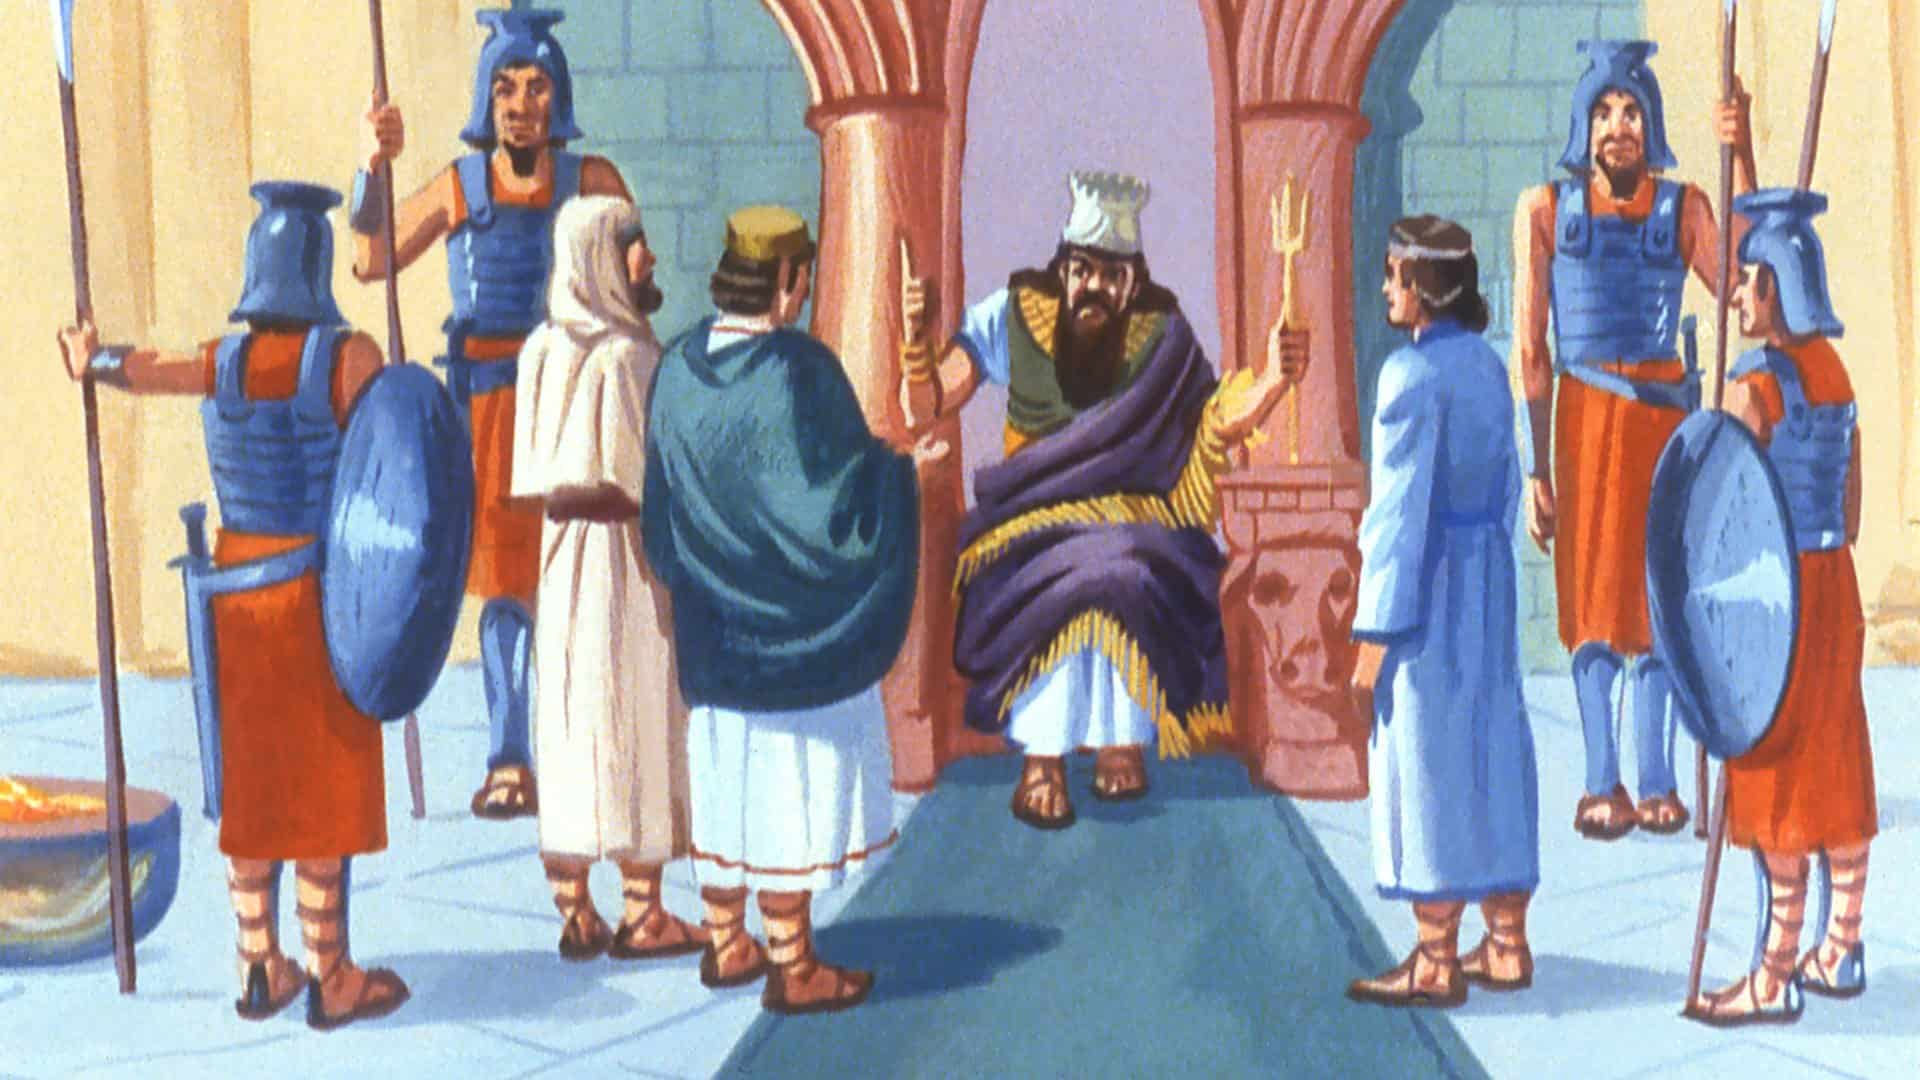 Shadrach, Meshach and Abednego before King Nebuchadnezzar [FreeBibleImages.org]